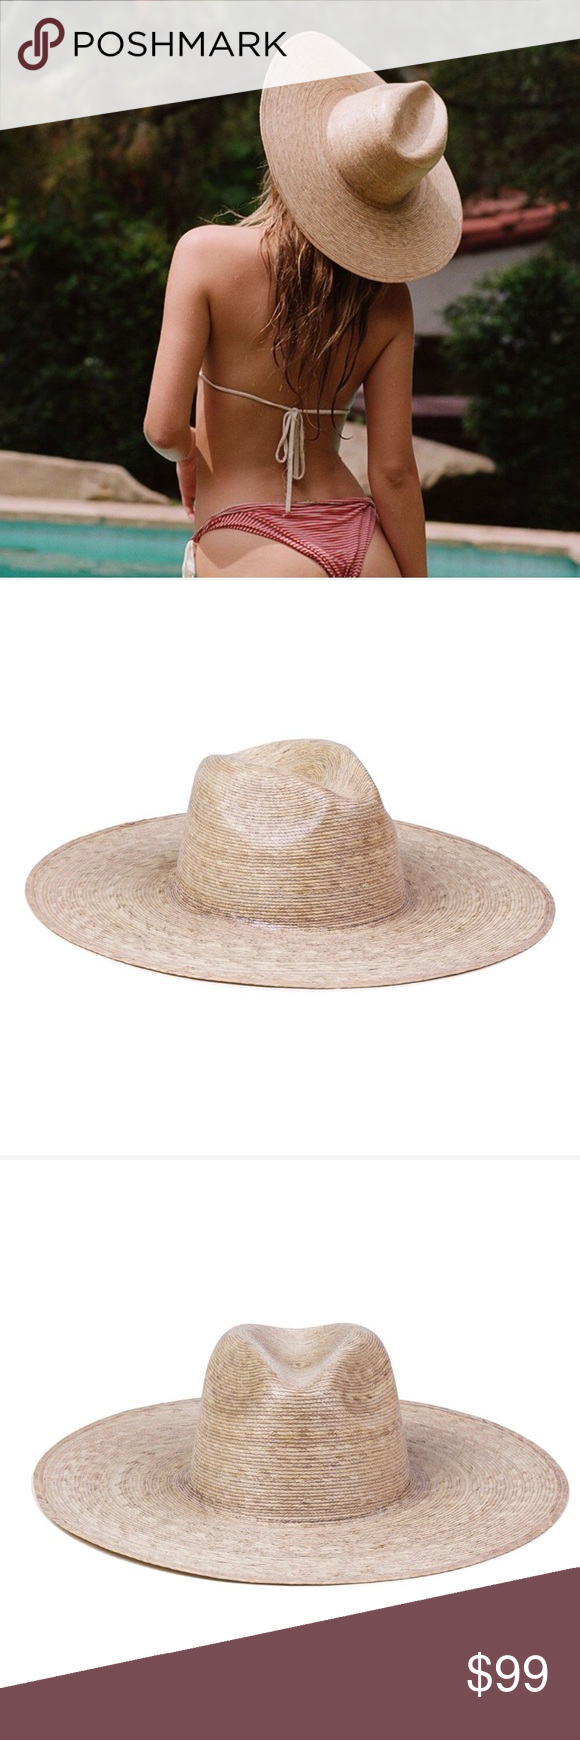 fed0f0c608b50 Lack of Color Palma Wide Fedora Handmade by artisans in Mexico